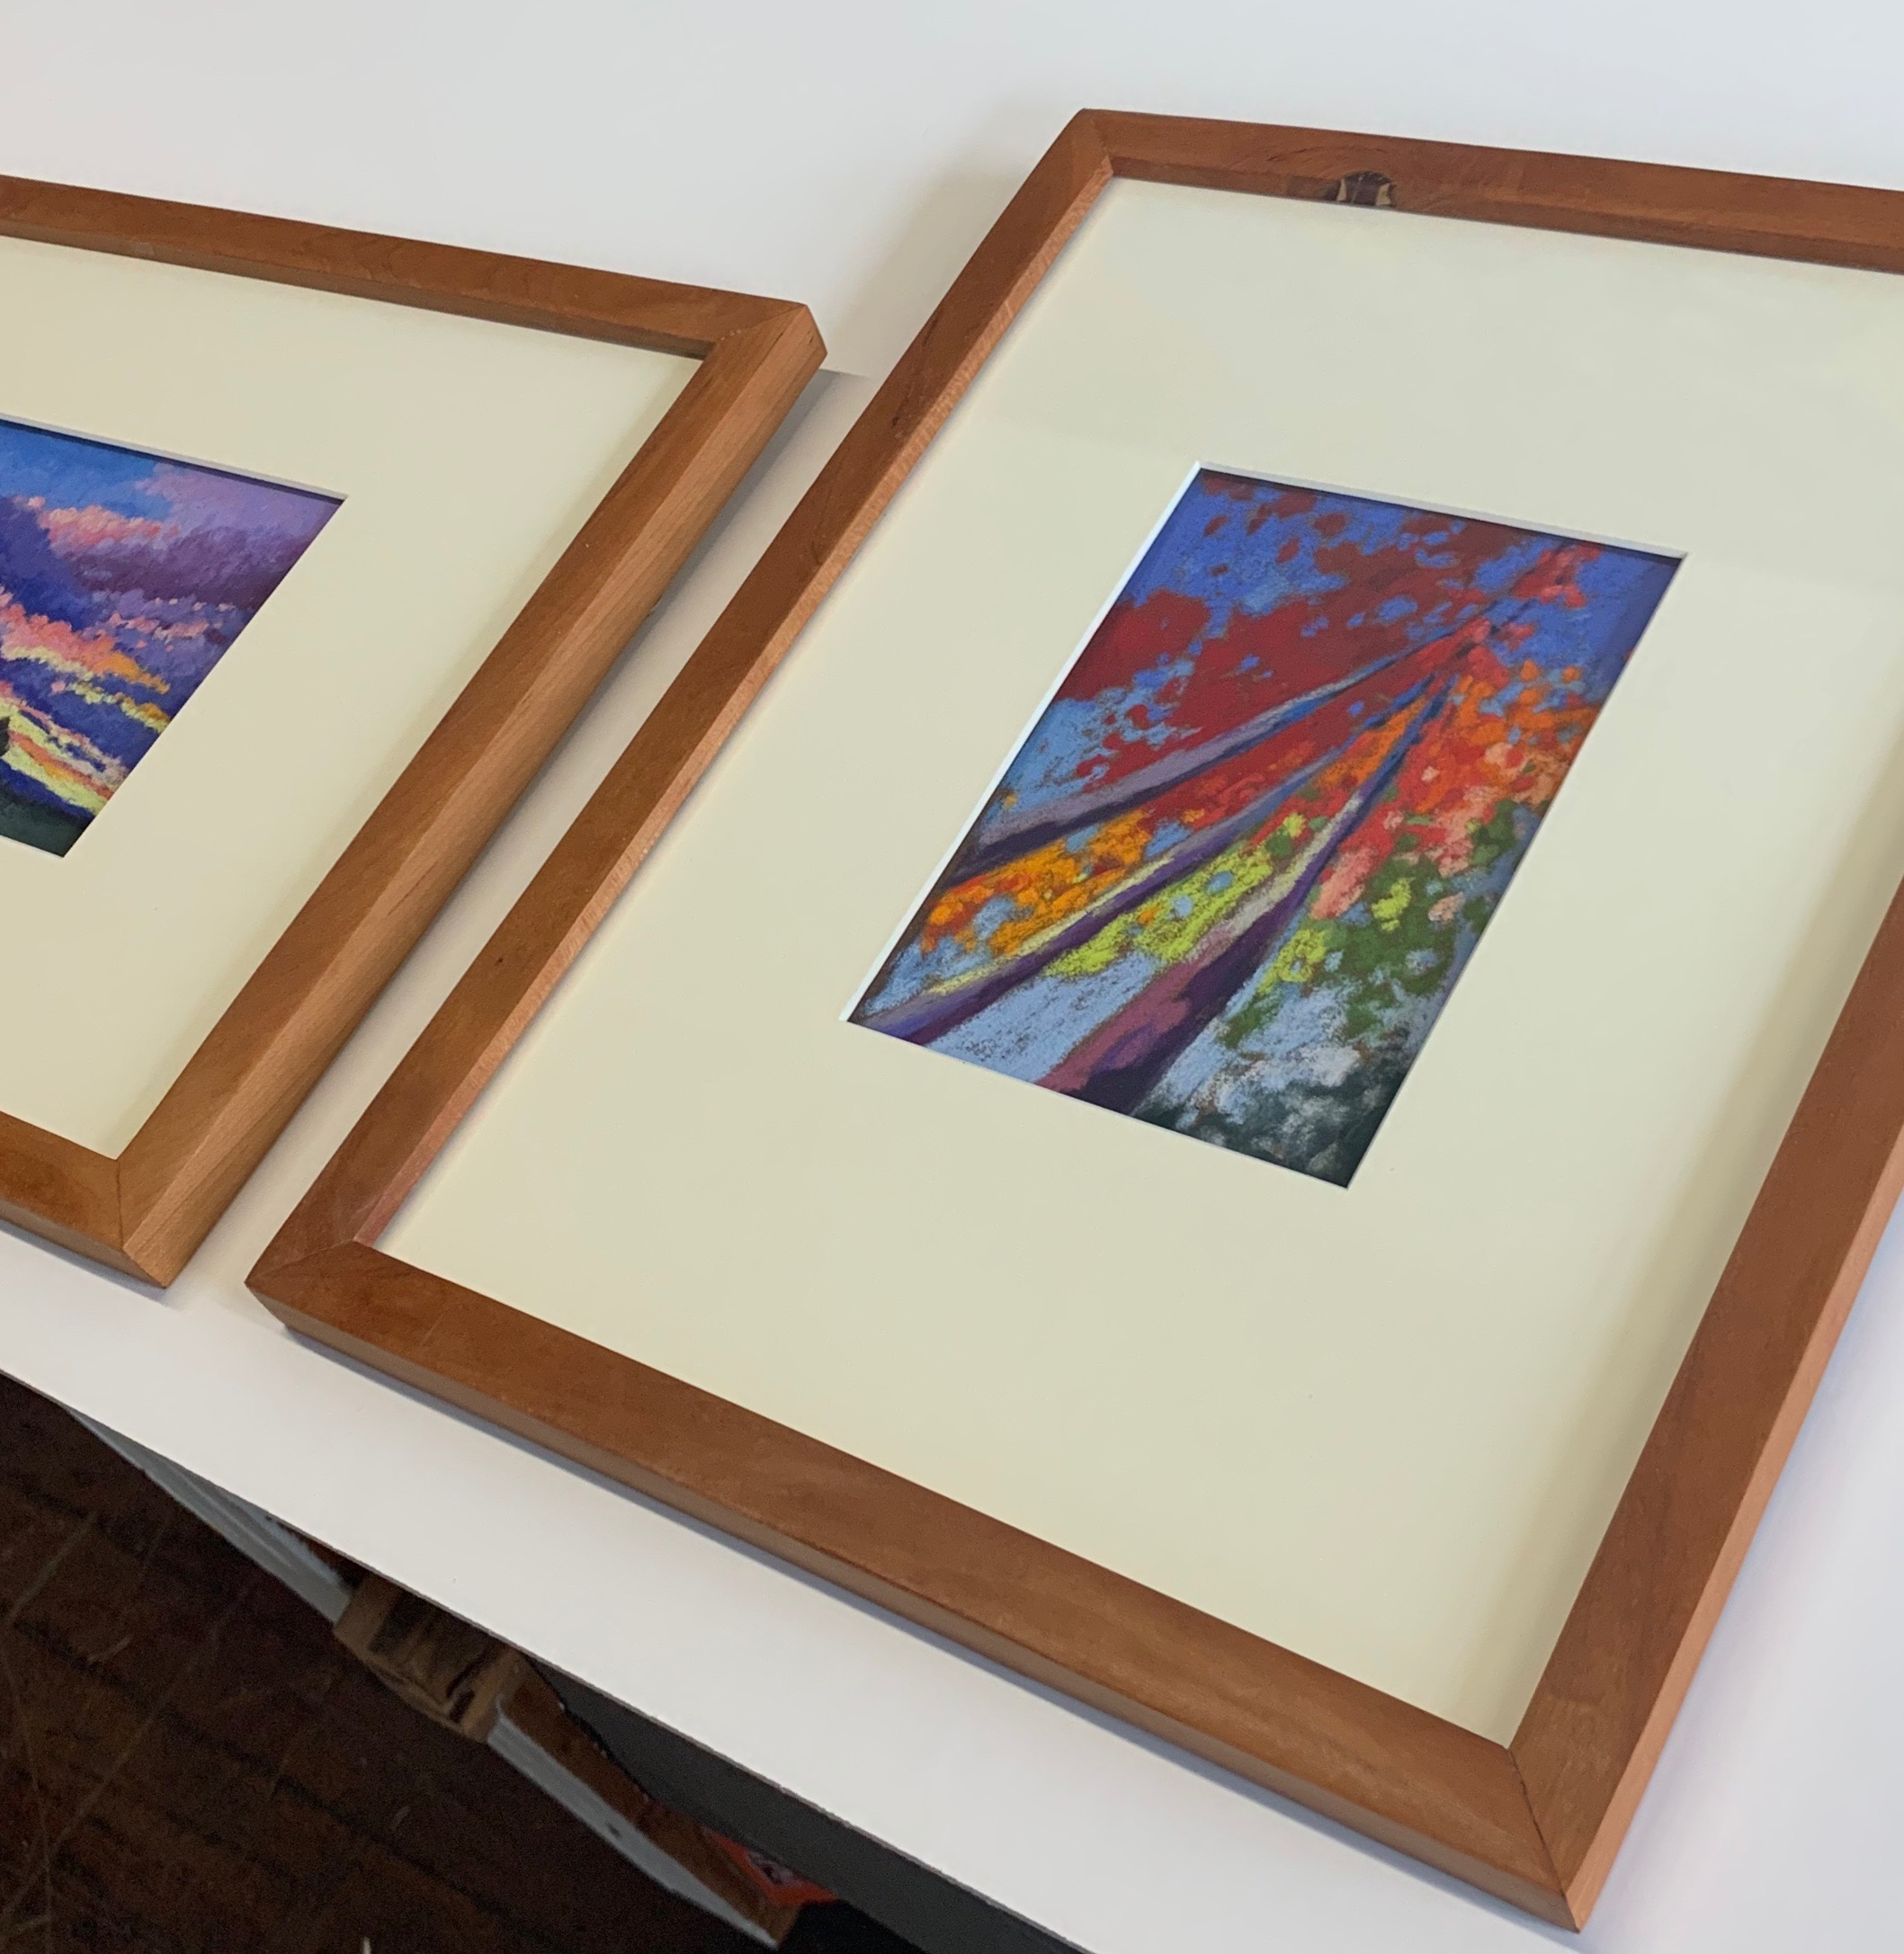 The smaller drawings are framed in thinner stock.